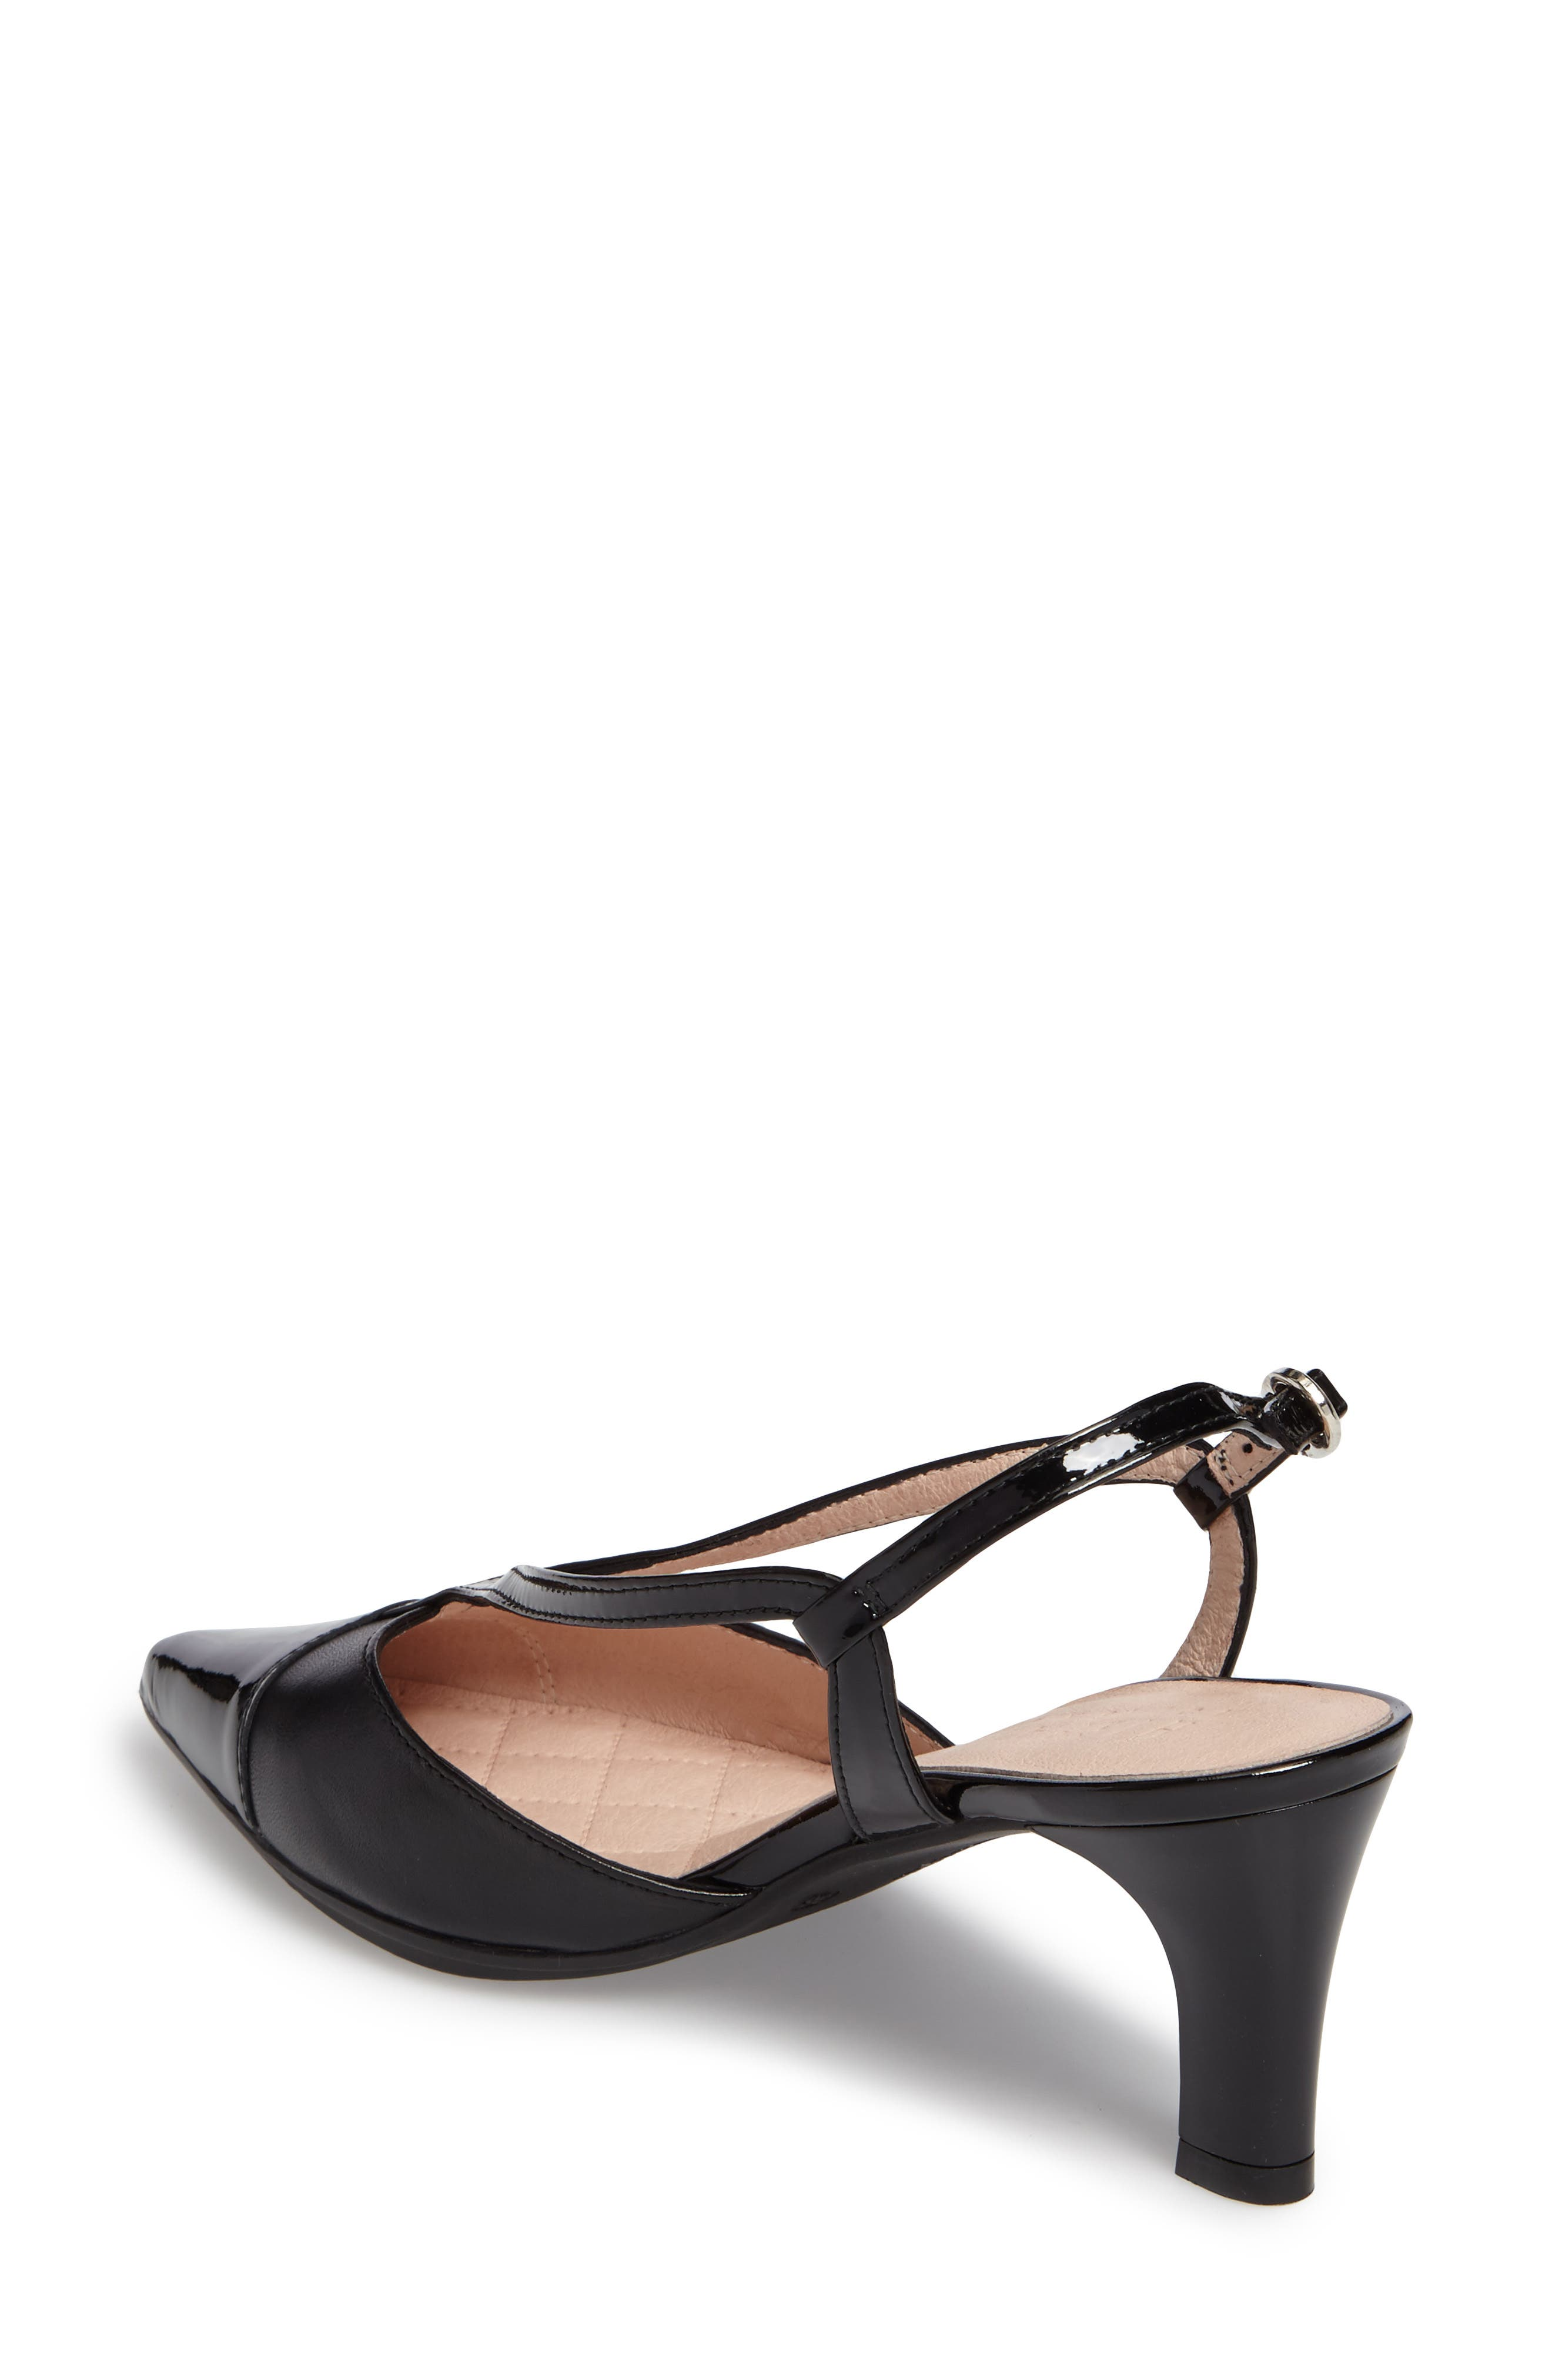 Hipster Pointy Cap Toe Pump,                             Alternate thumbnail 2, color,                             001